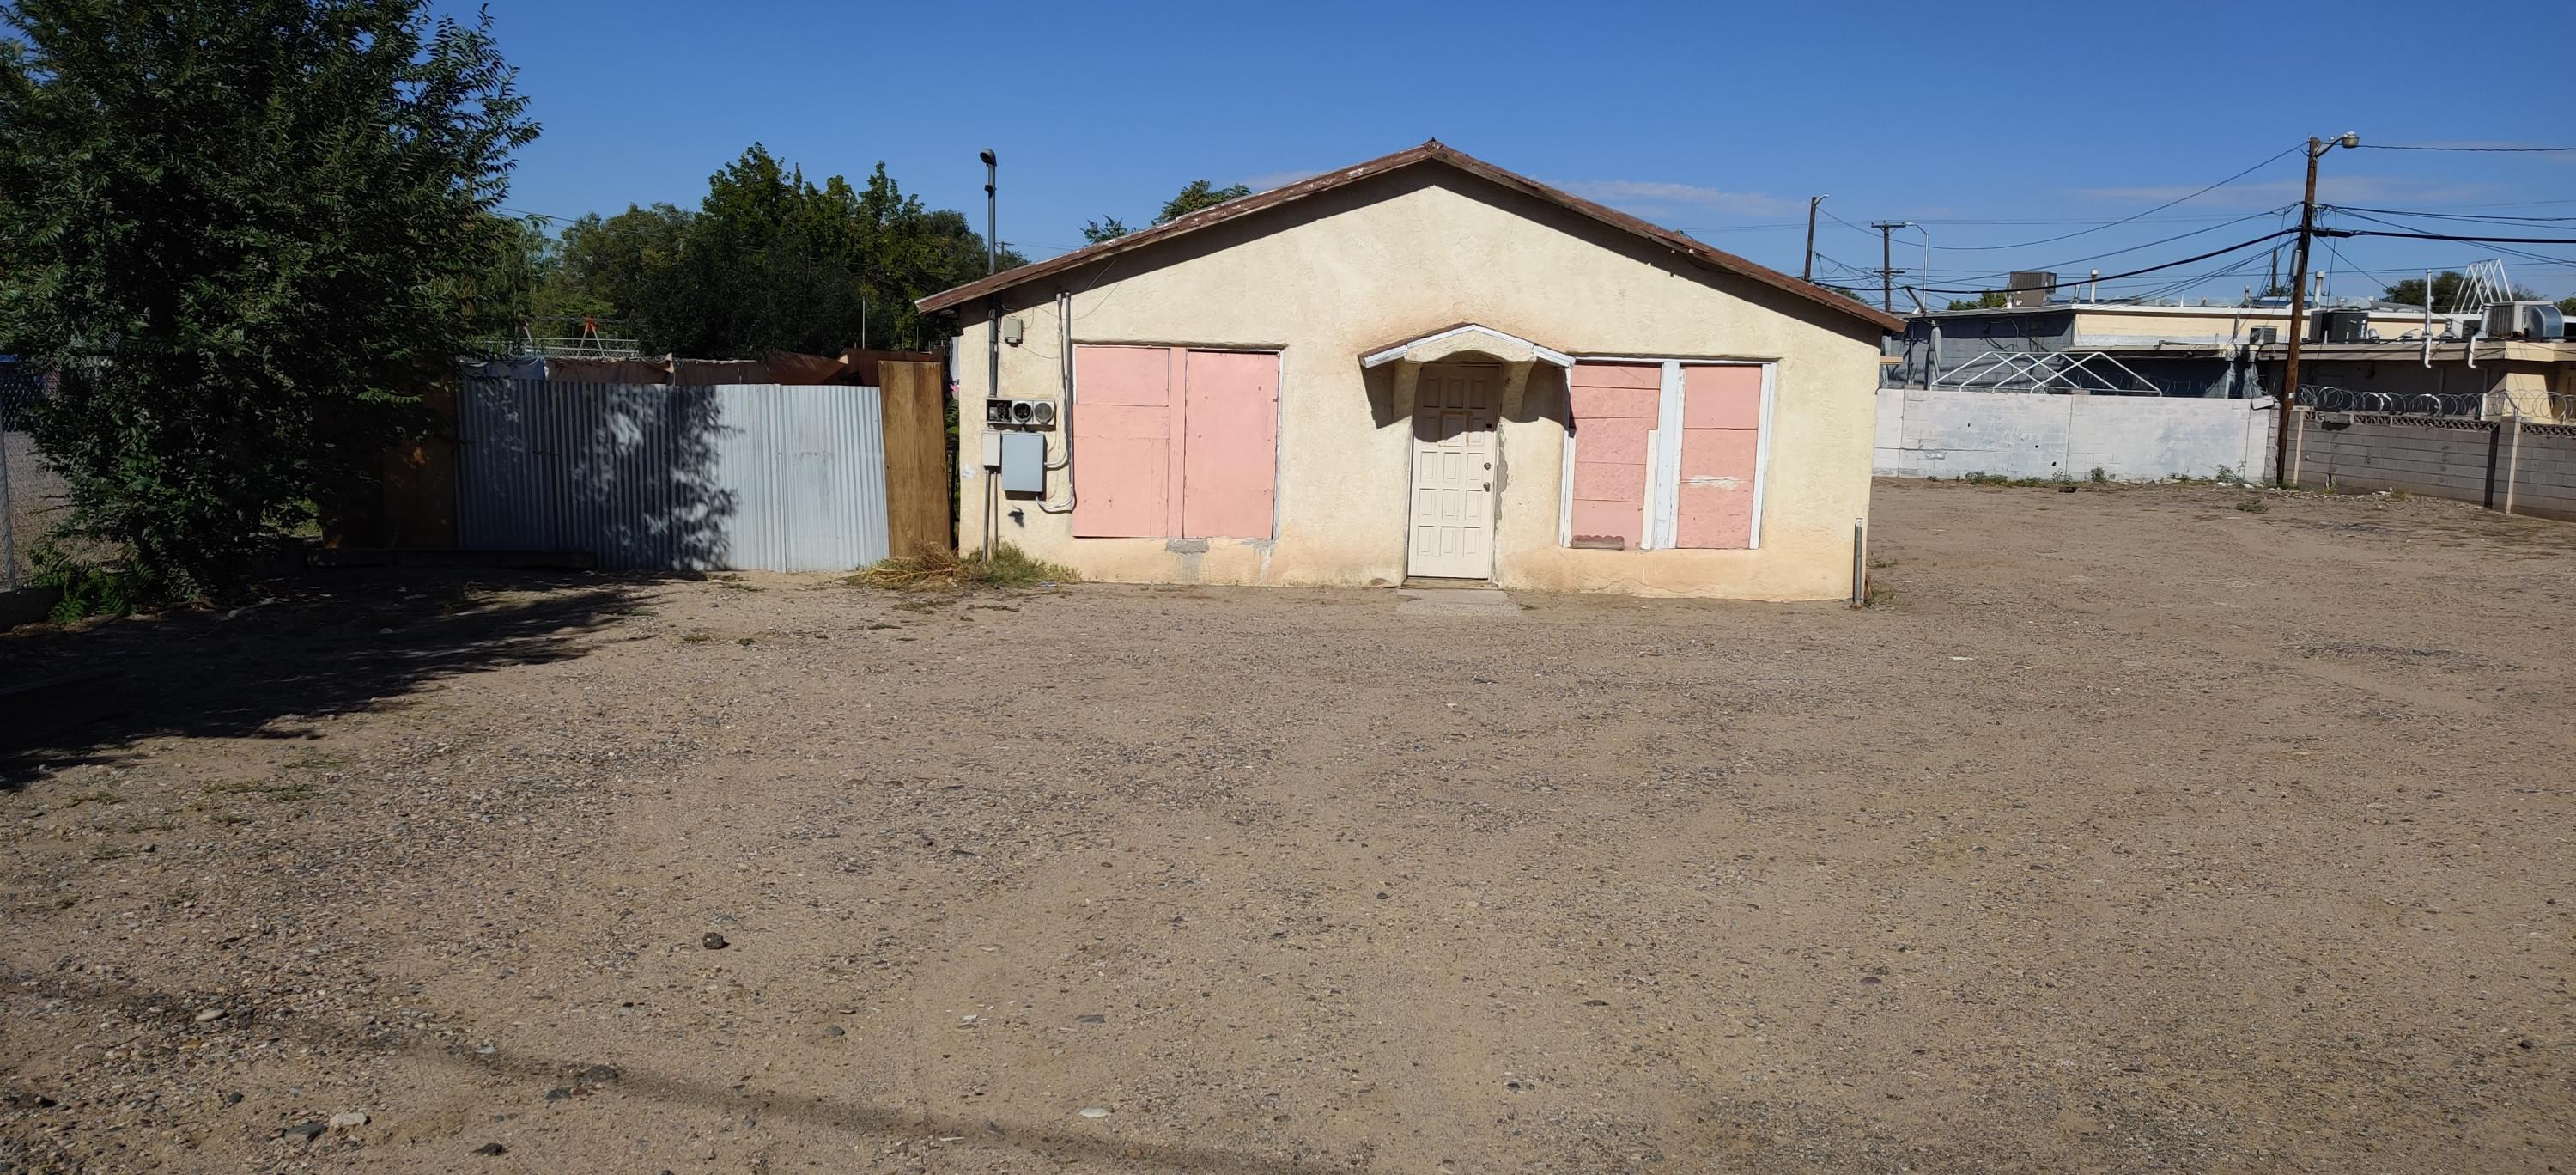 Location is great but home does need repairs. Zoning allows for residential or commercial use.  Guest house/Casita in the back is 1 BR 1 BA, 416 sqft. Seller will consider owner-financing! The lot 151 Isleta can be sold together.